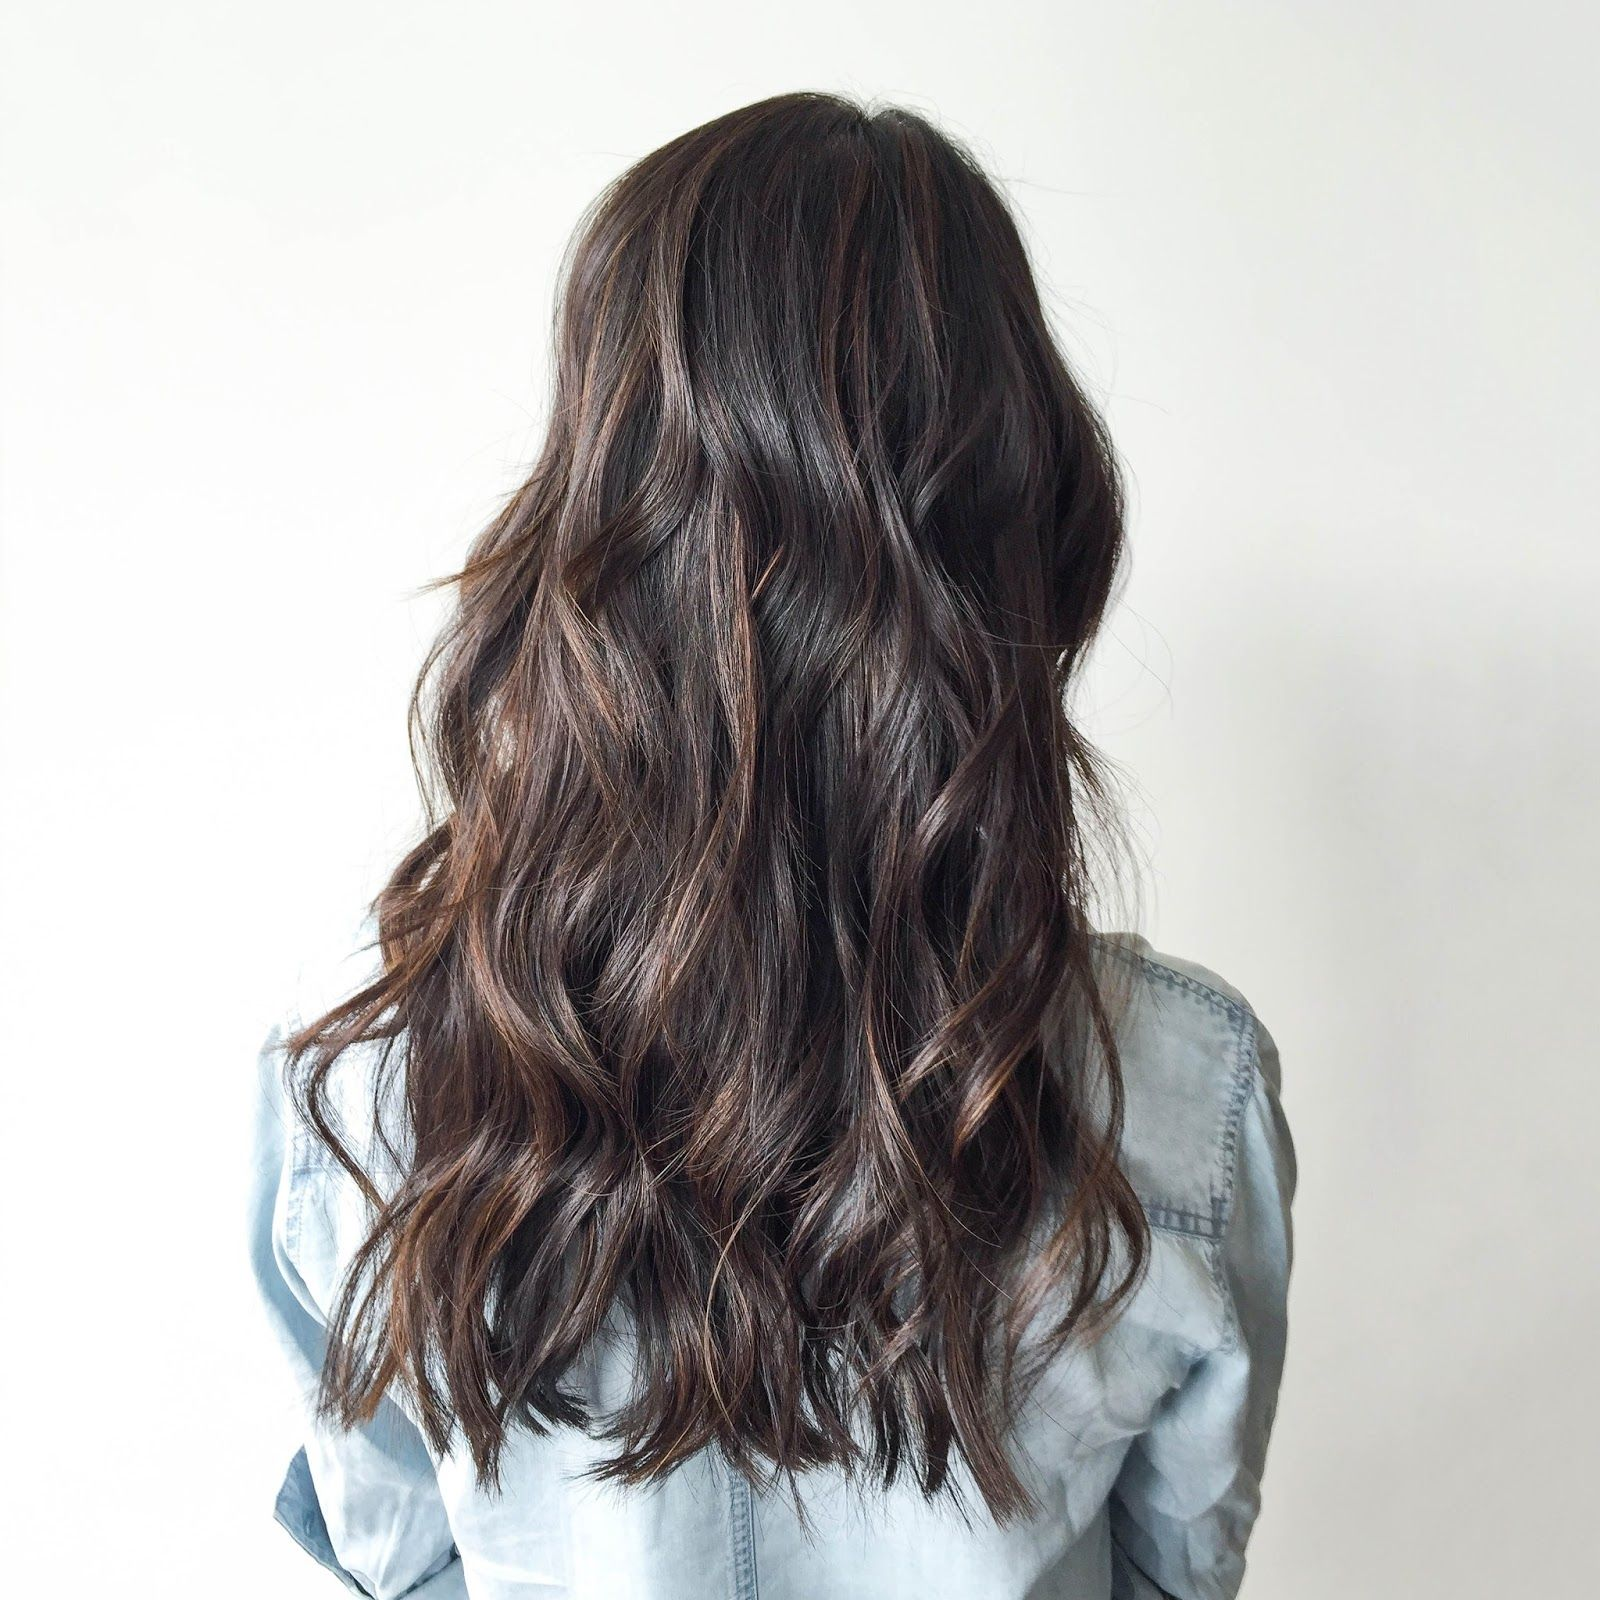 Asian brunette hair layers reverse directional curls balayage